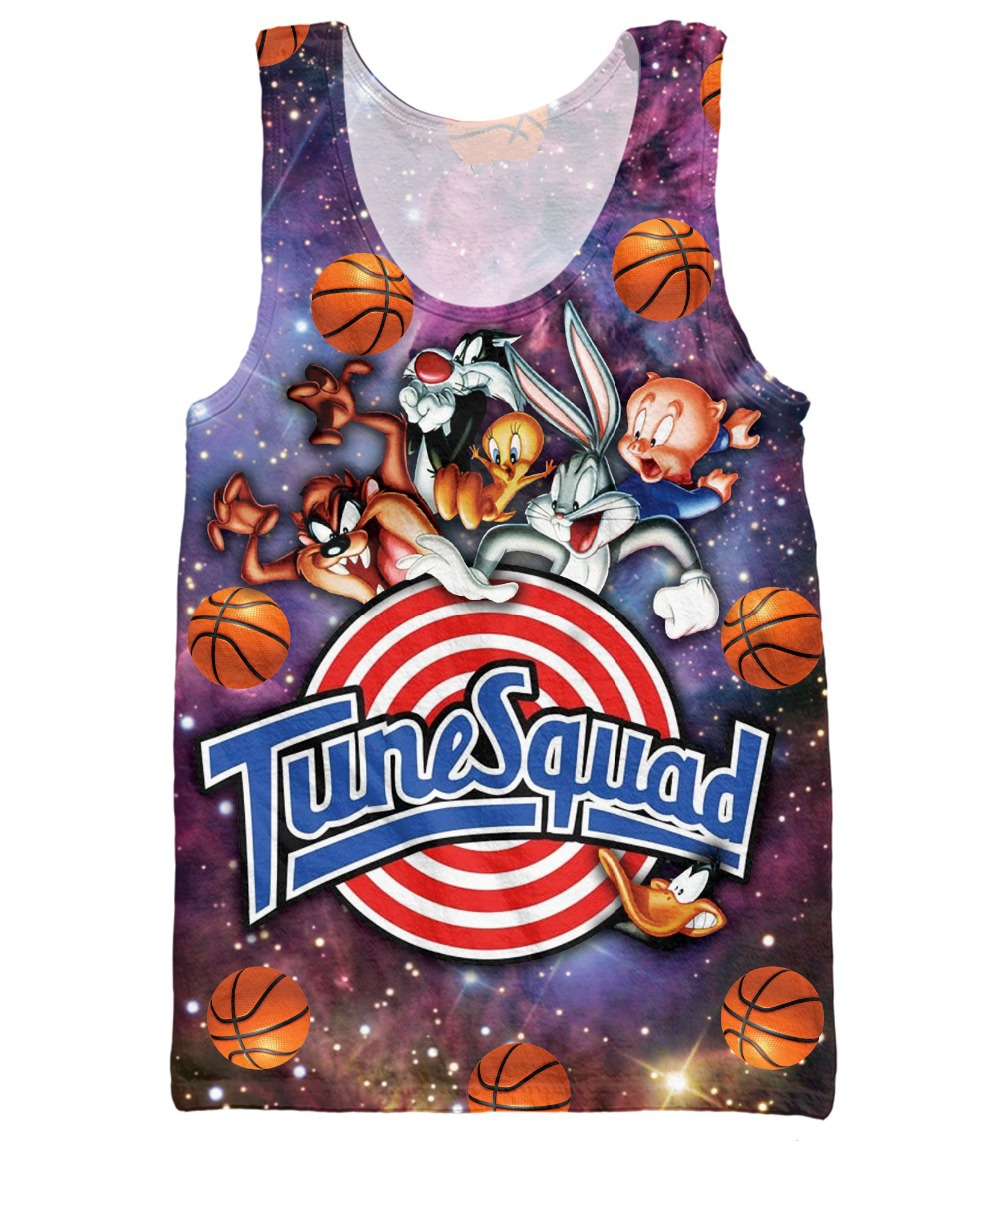 Space Jam Tune Squad Tank Top Sexy Women tee Looney Tunes Bugs Bunny Tweety Bird Taz Daffy Duck Sylvester Vest Men galaxy Jersey